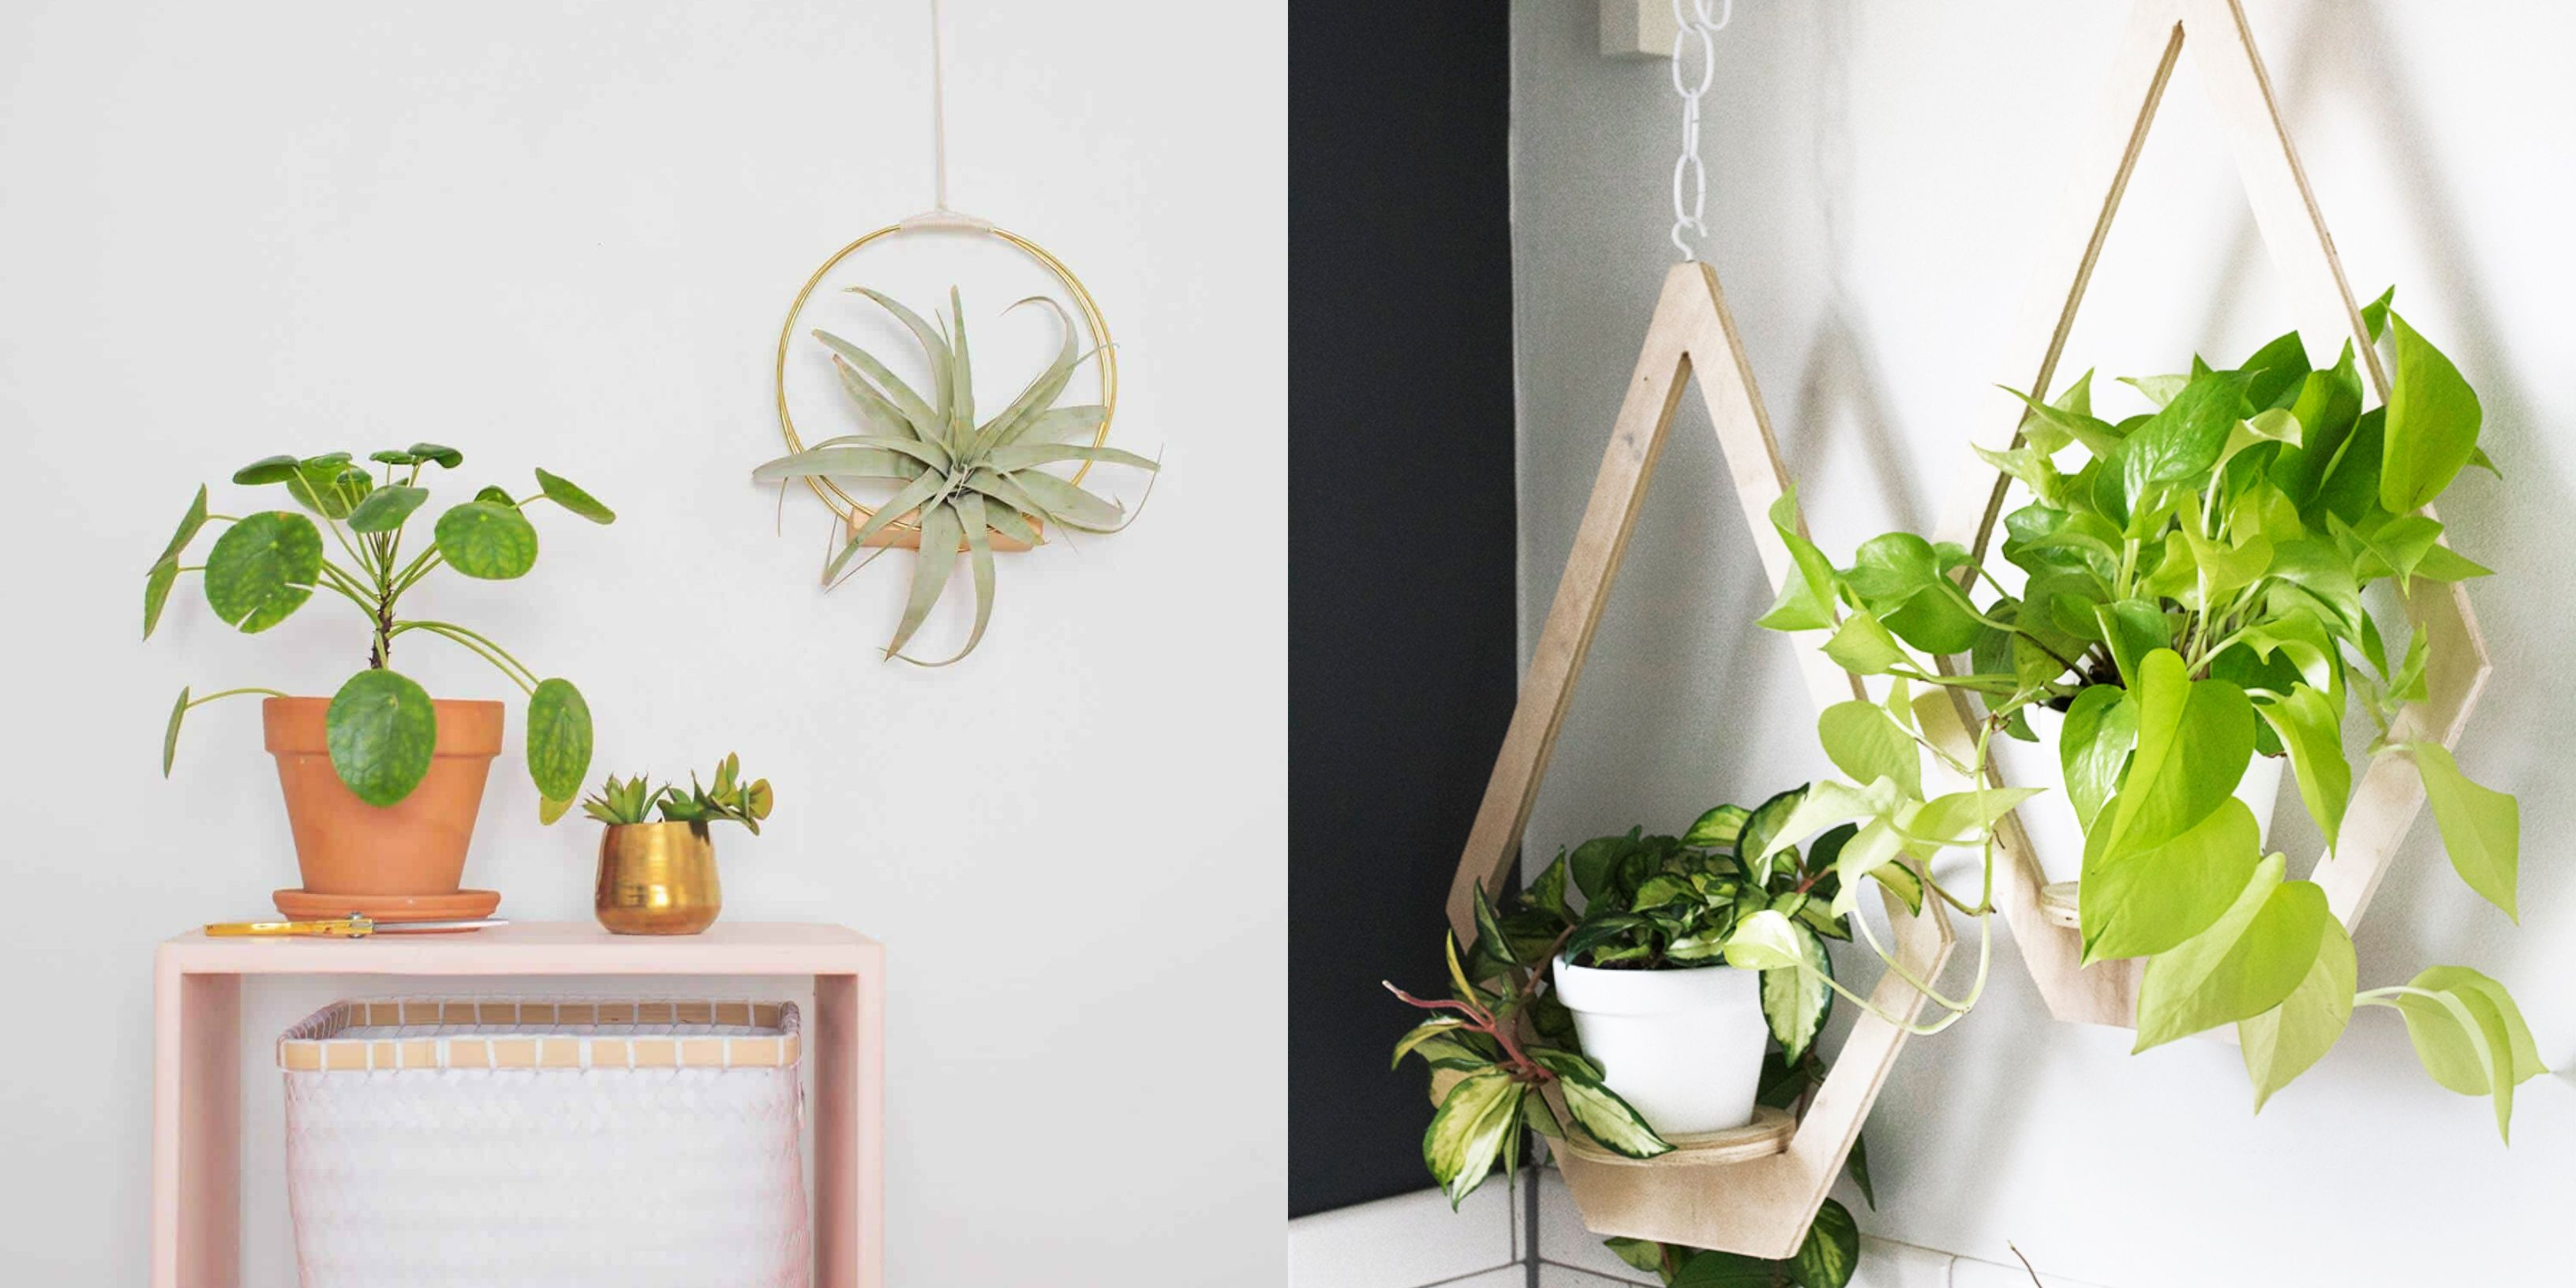 30+ Creative Ways To Plant A Vertical Garden - How To Make A with Farm Metal Wall Rack and 3 Tin Pot With Hanger Wall Decor (Image 4 of 30)